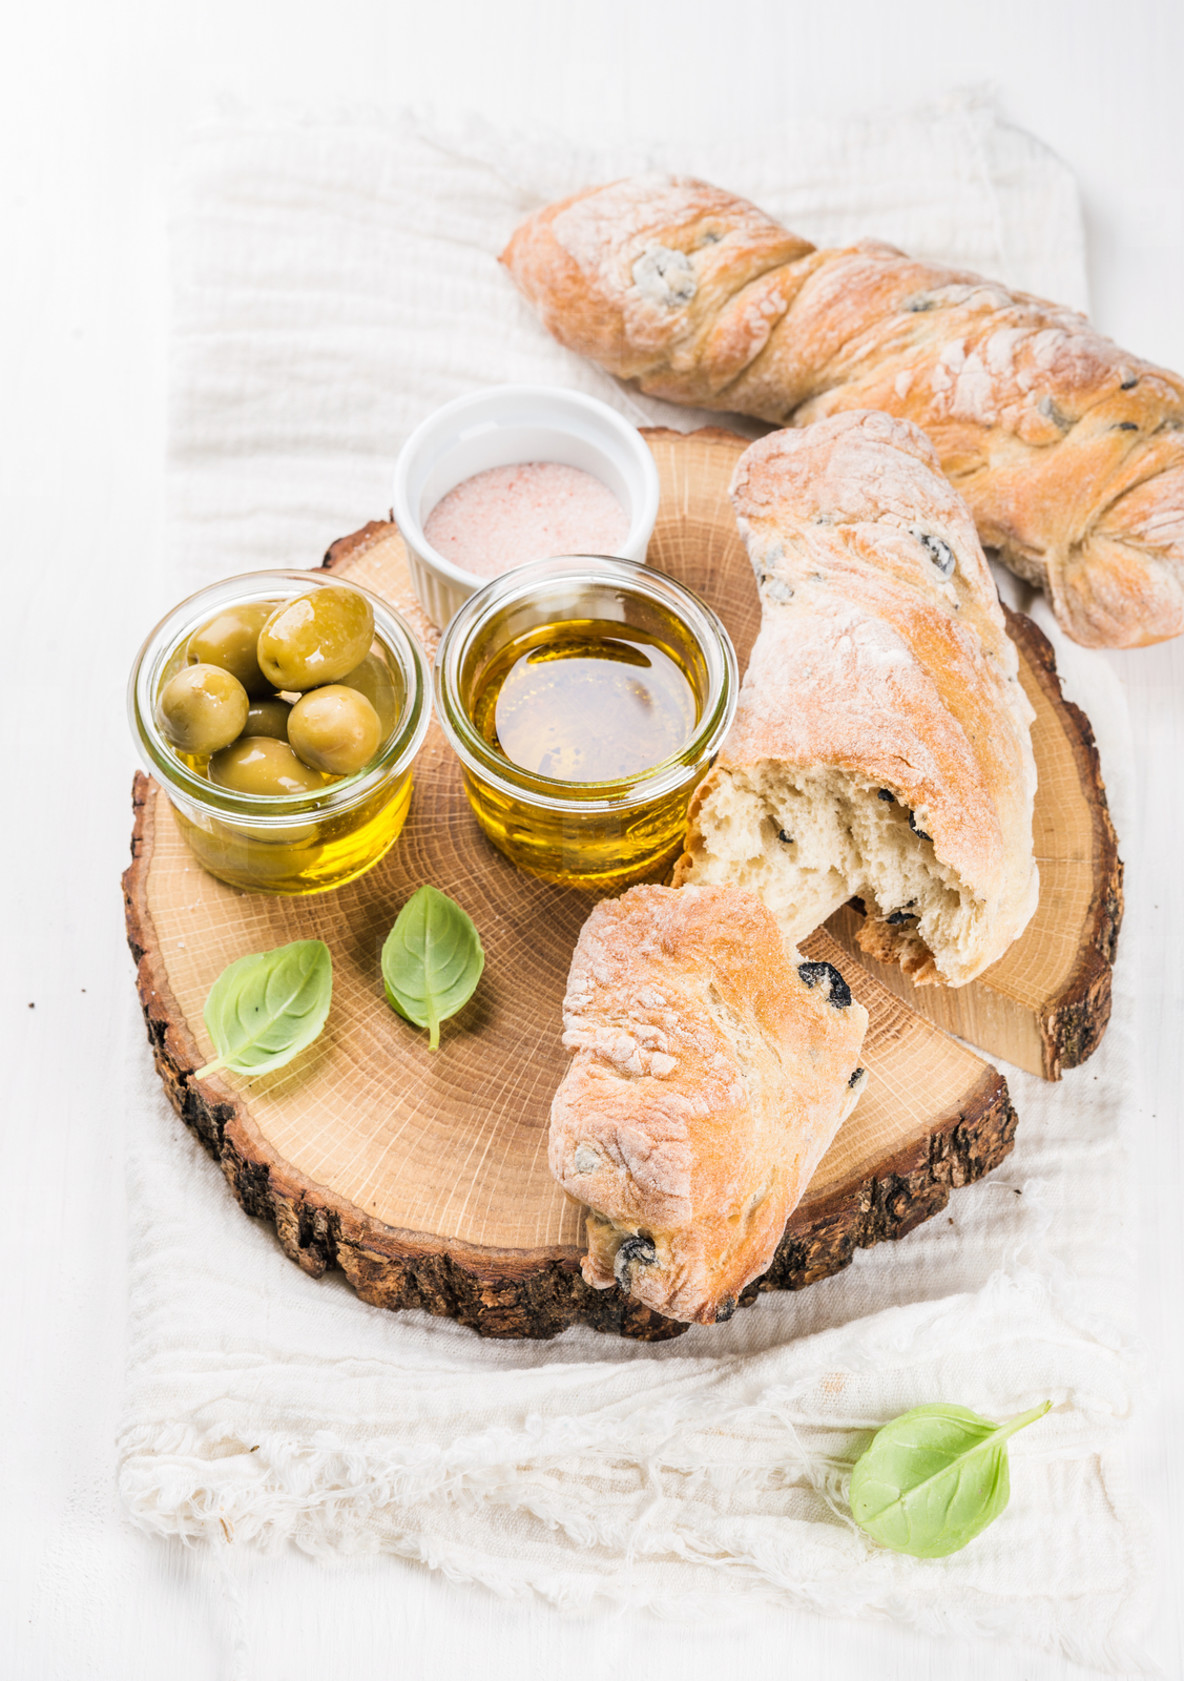 Fresh ciabatta bread  Mediterranean olives and fresh vrgine oil with basil